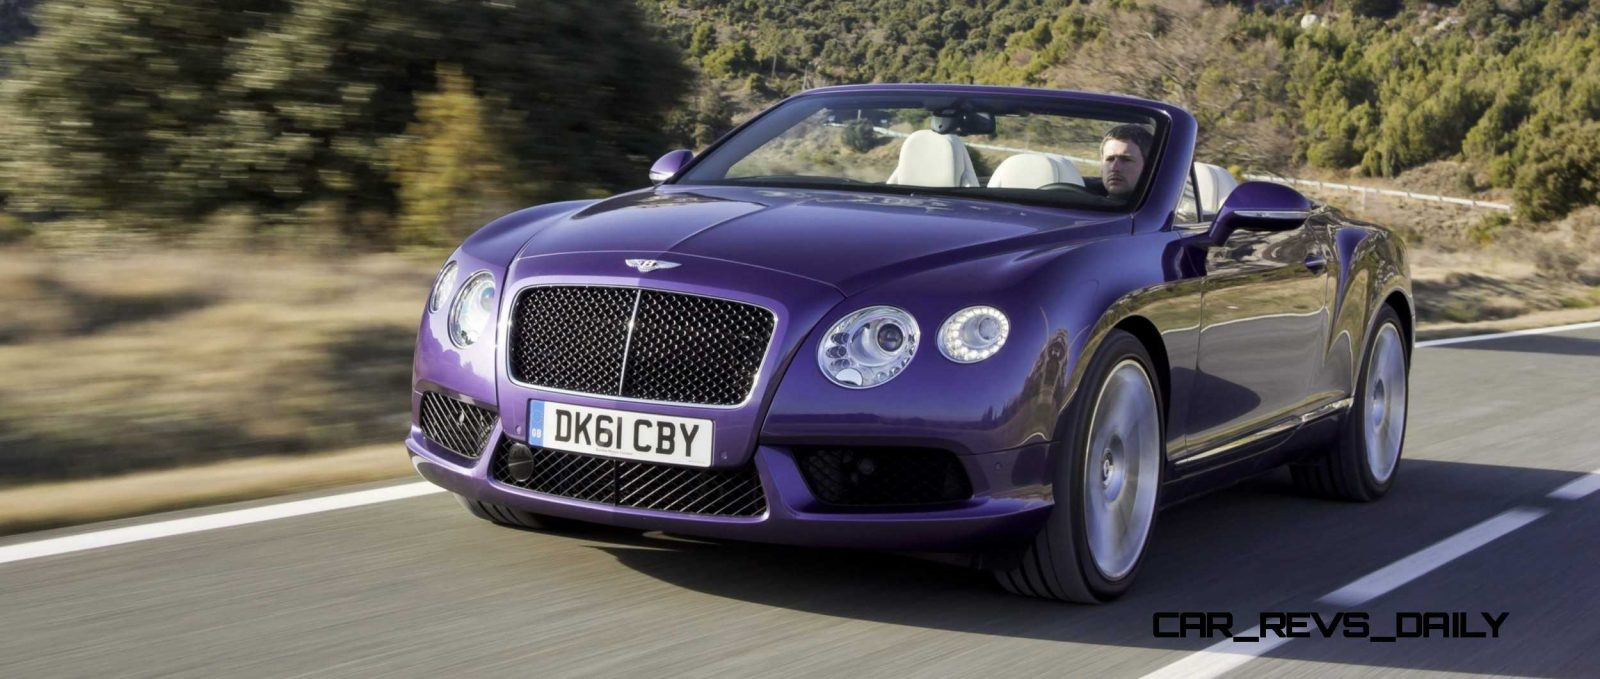 carrevsdaily 2014 bentley continental gtc v8 and v8 s 69. Cars Review. Best American Auto & Cars Review